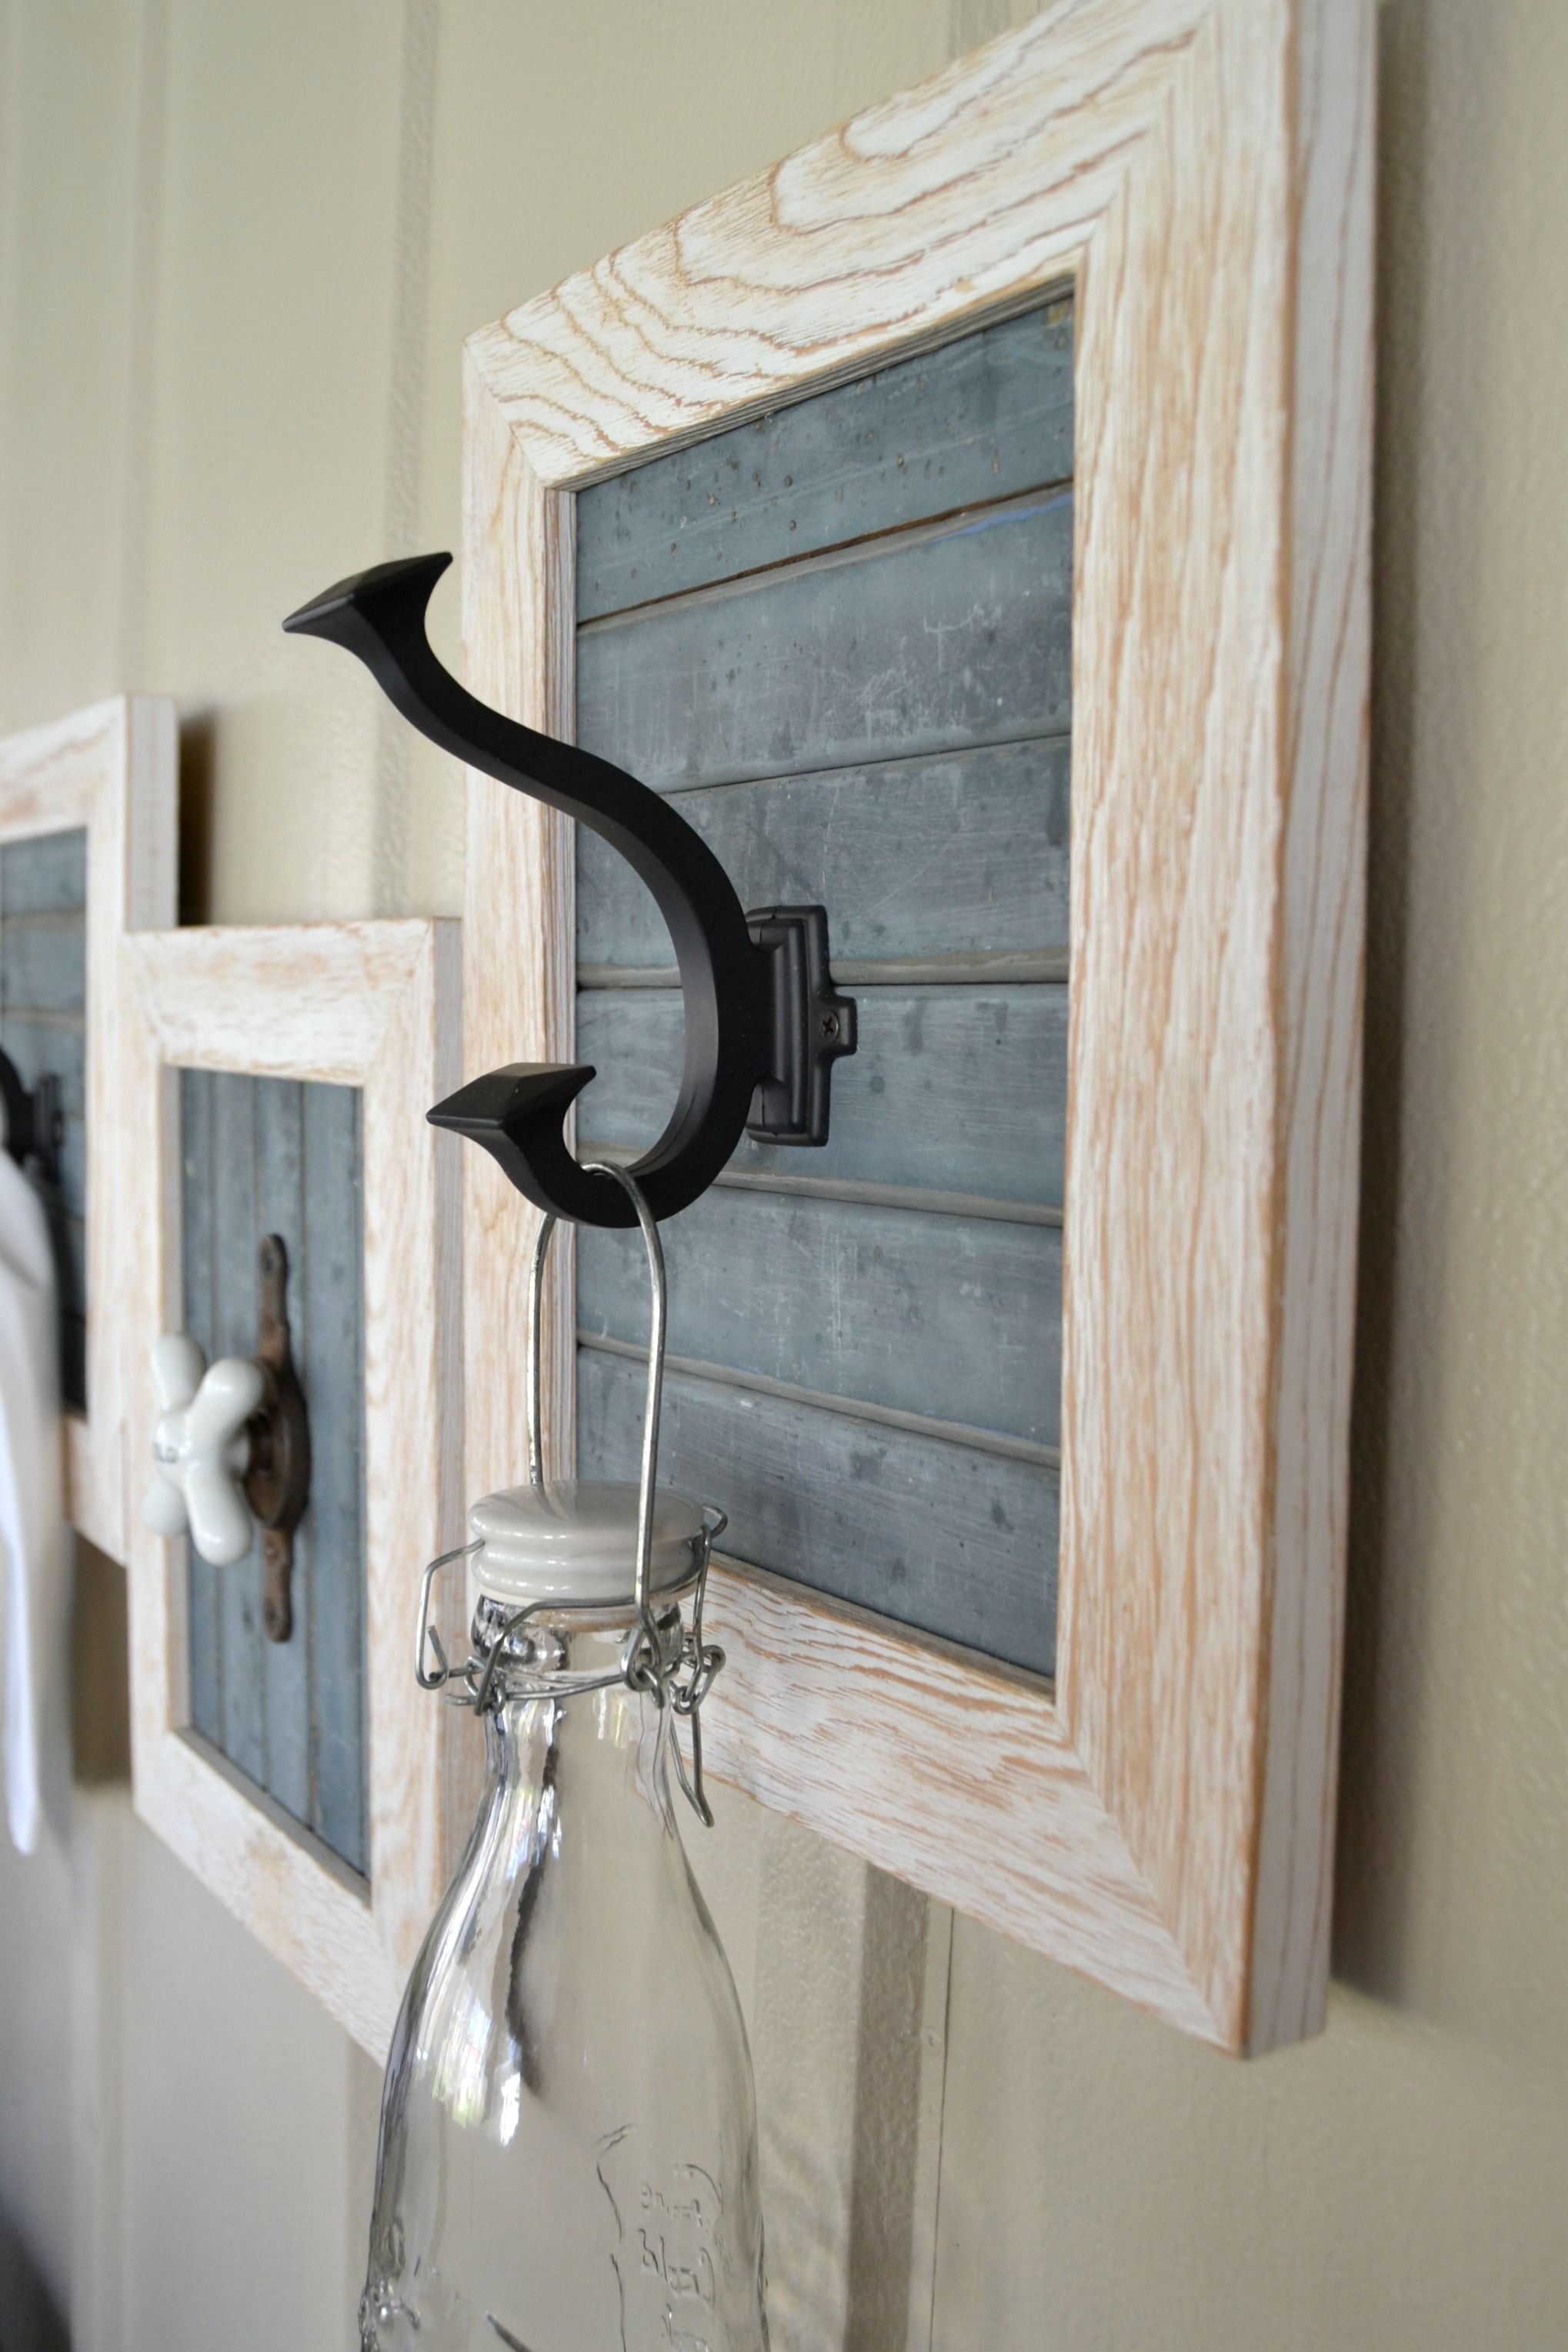 DIY Farmhouse Bathroom Hooks